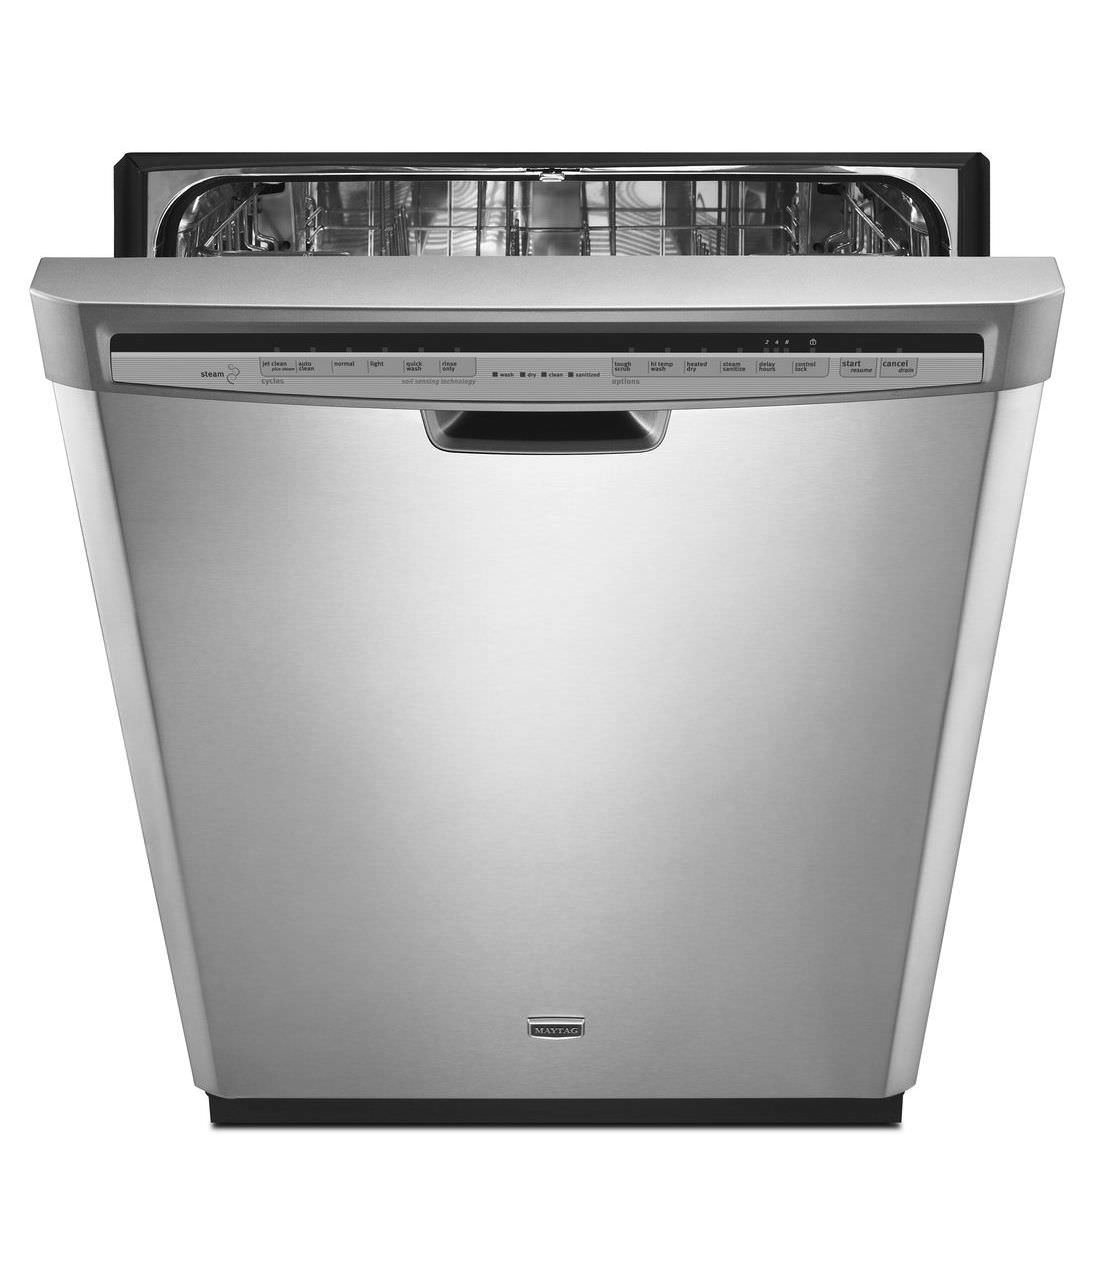 Review of Maytag JetClean Plus Front Control Dishwasher with Steam Cleaning (Model: MDB7749SBM)